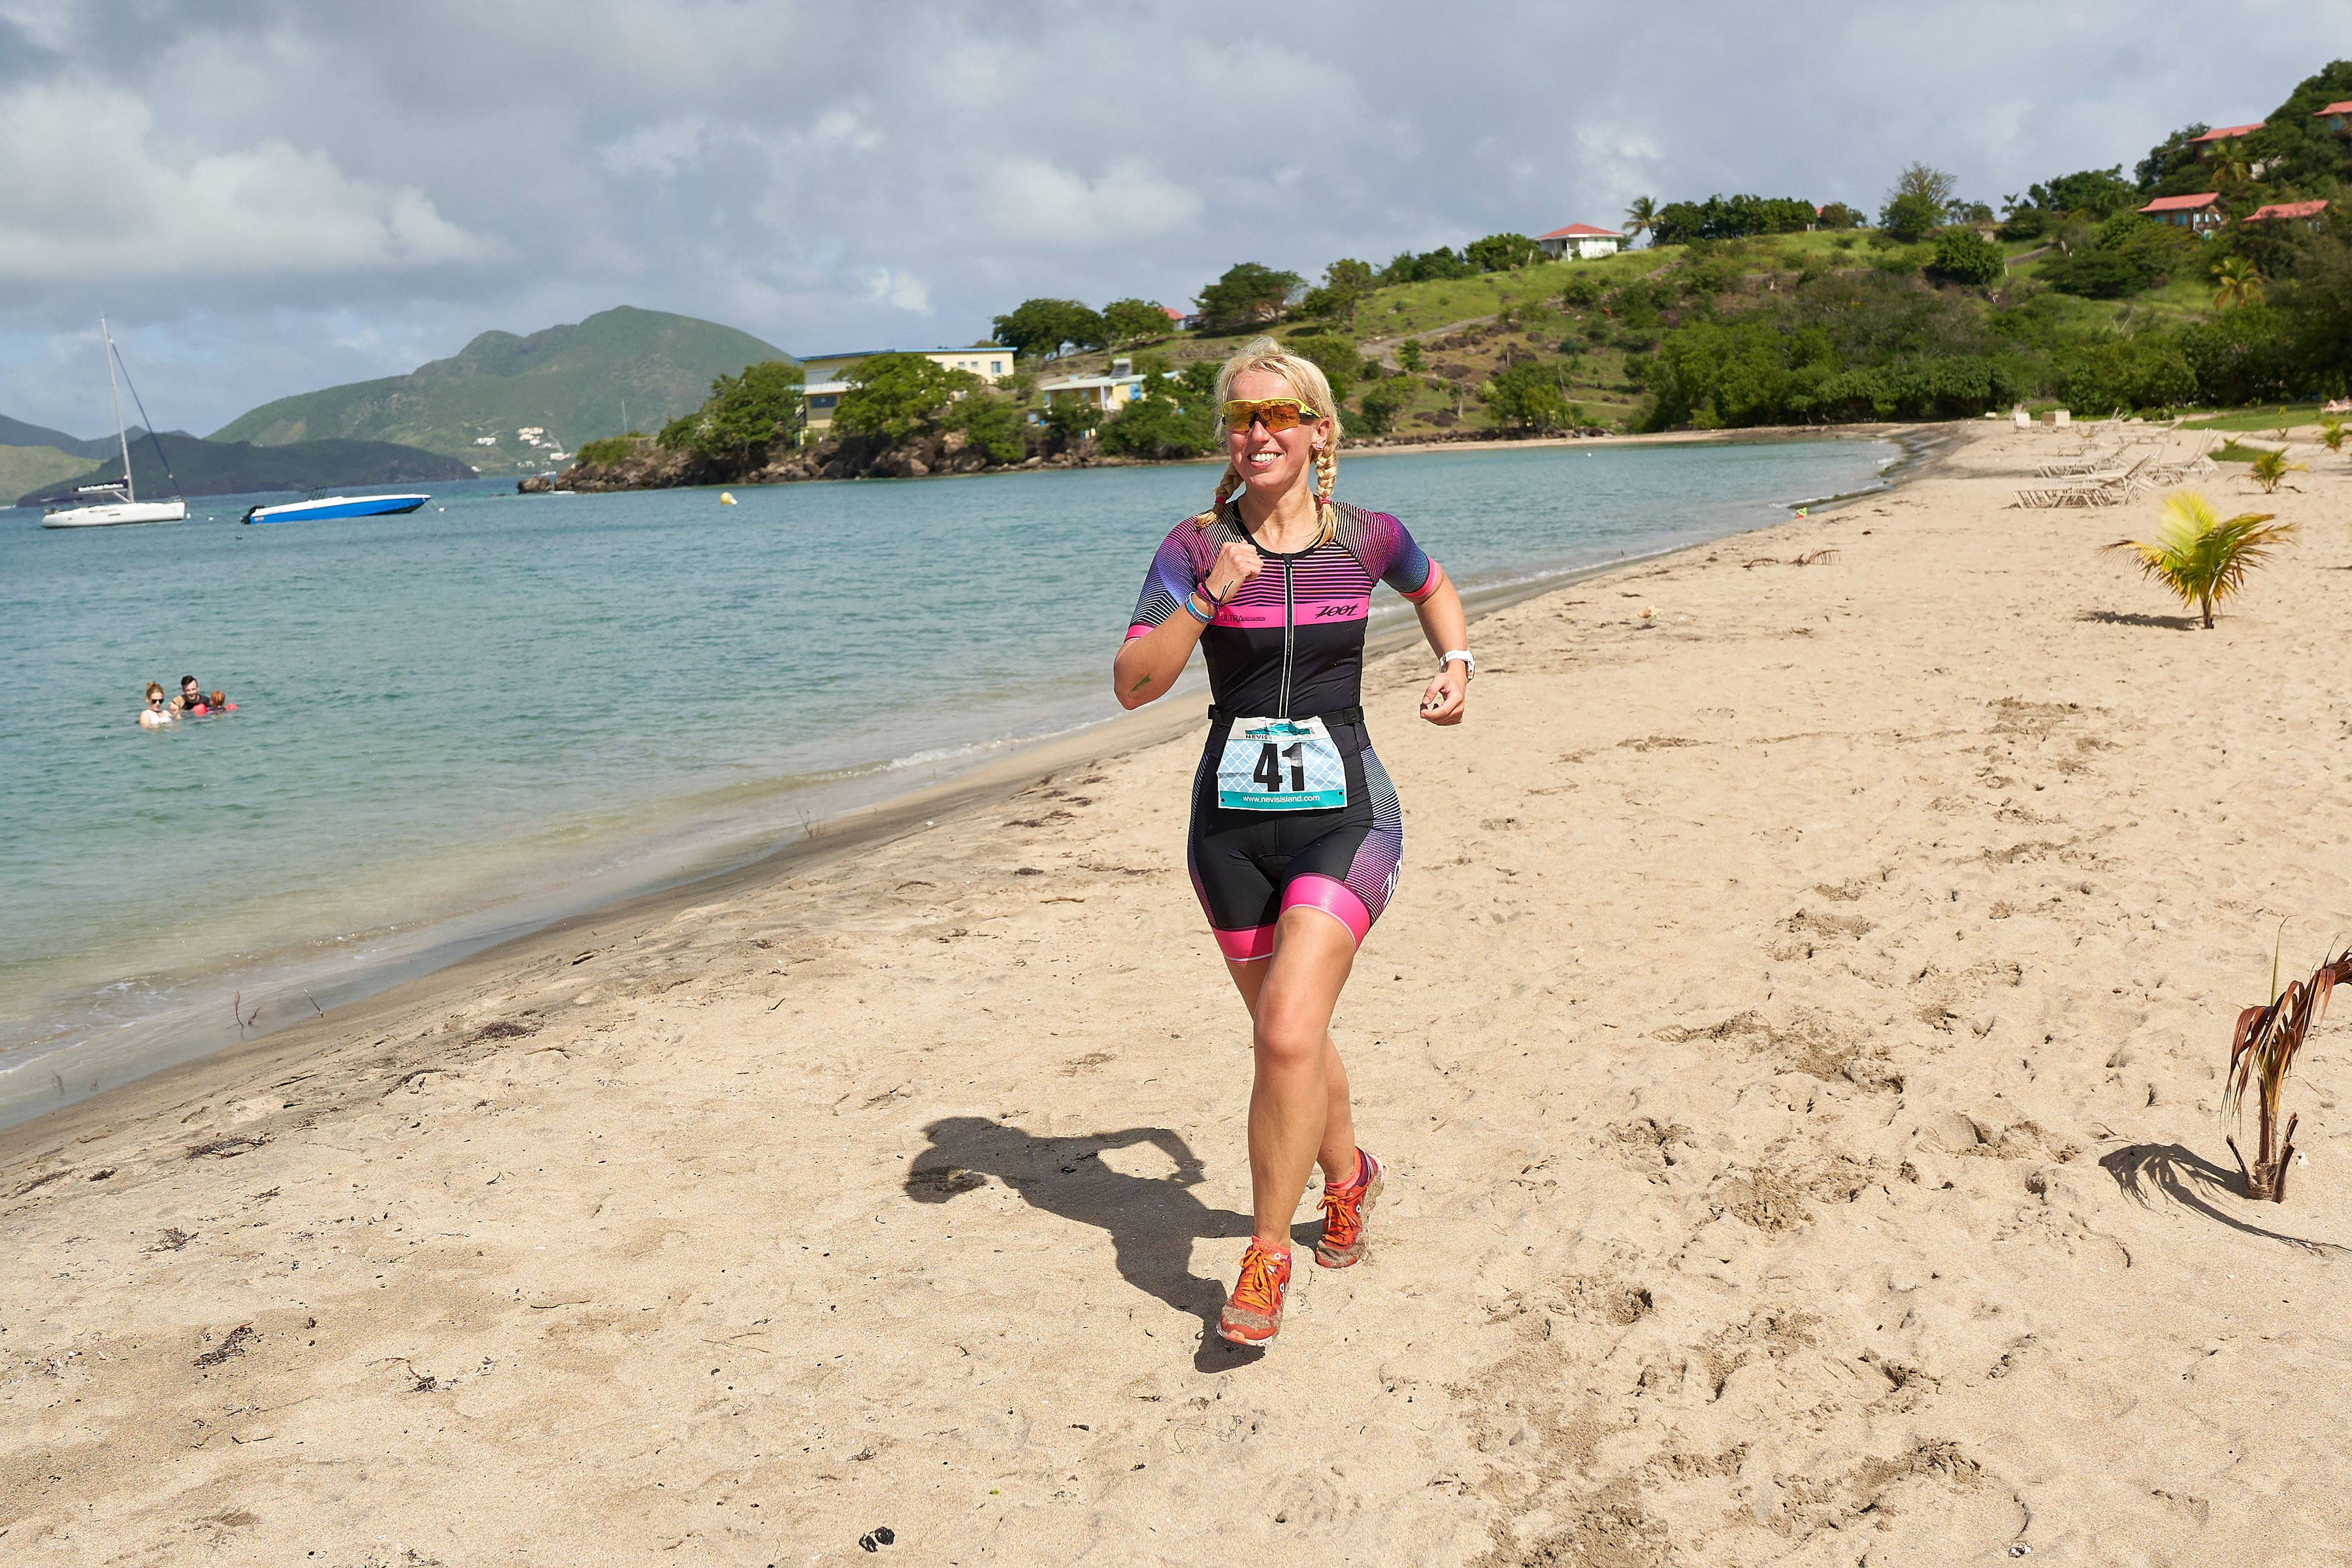 Helen on the beach finish of this year